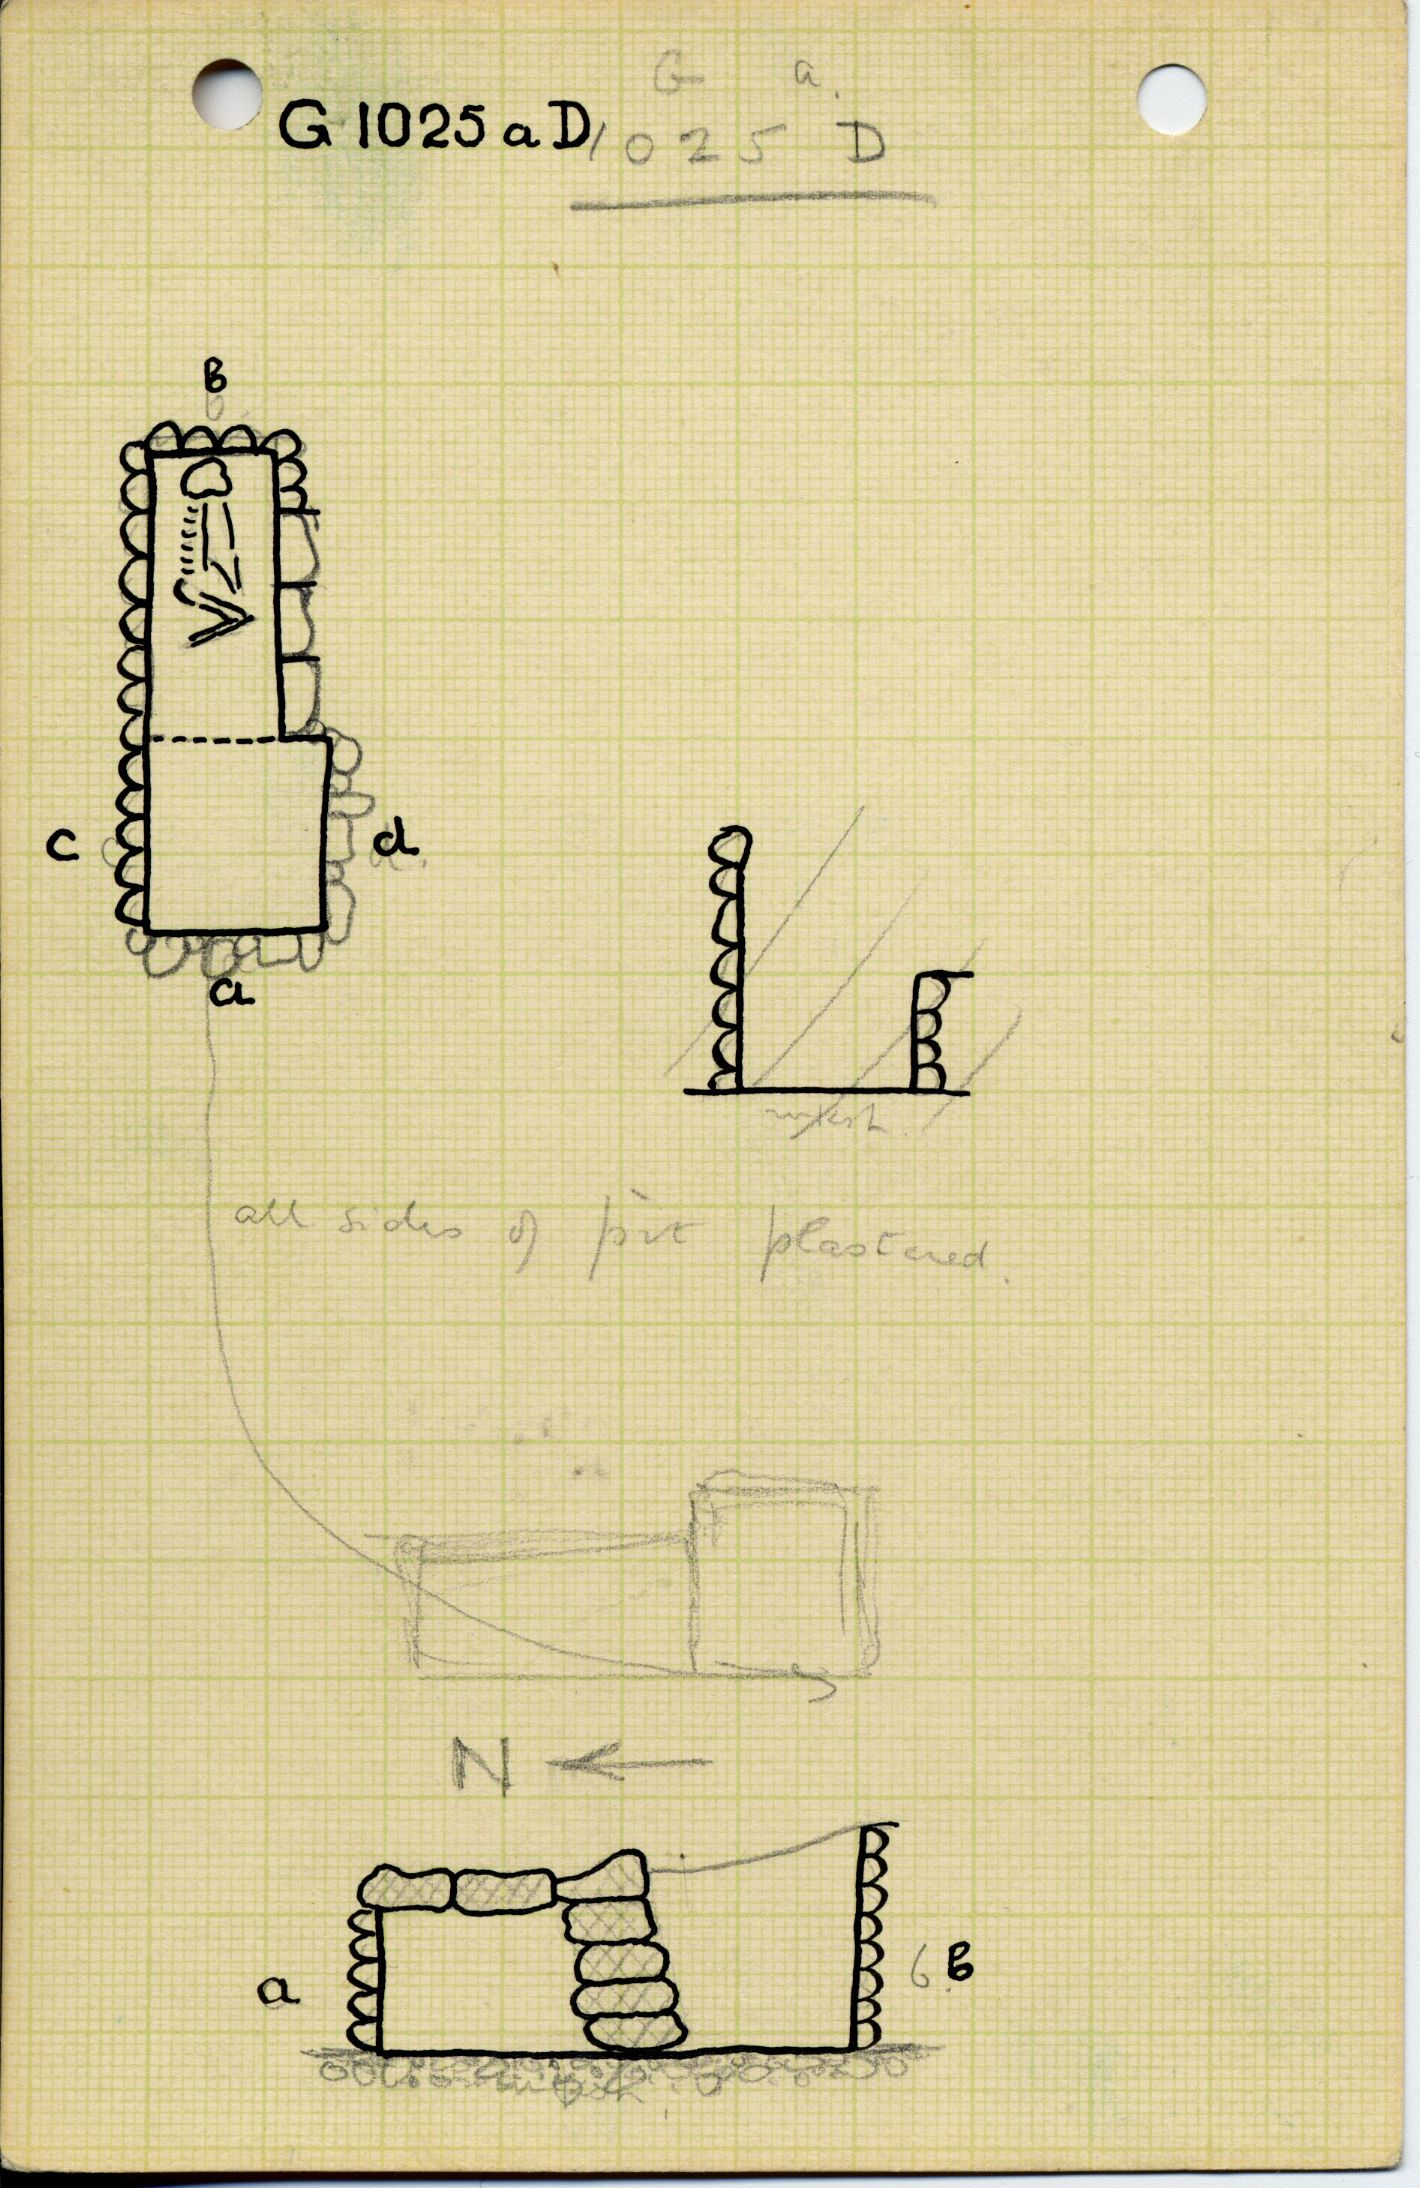 Maps and plans: G 1025a, Shaft D